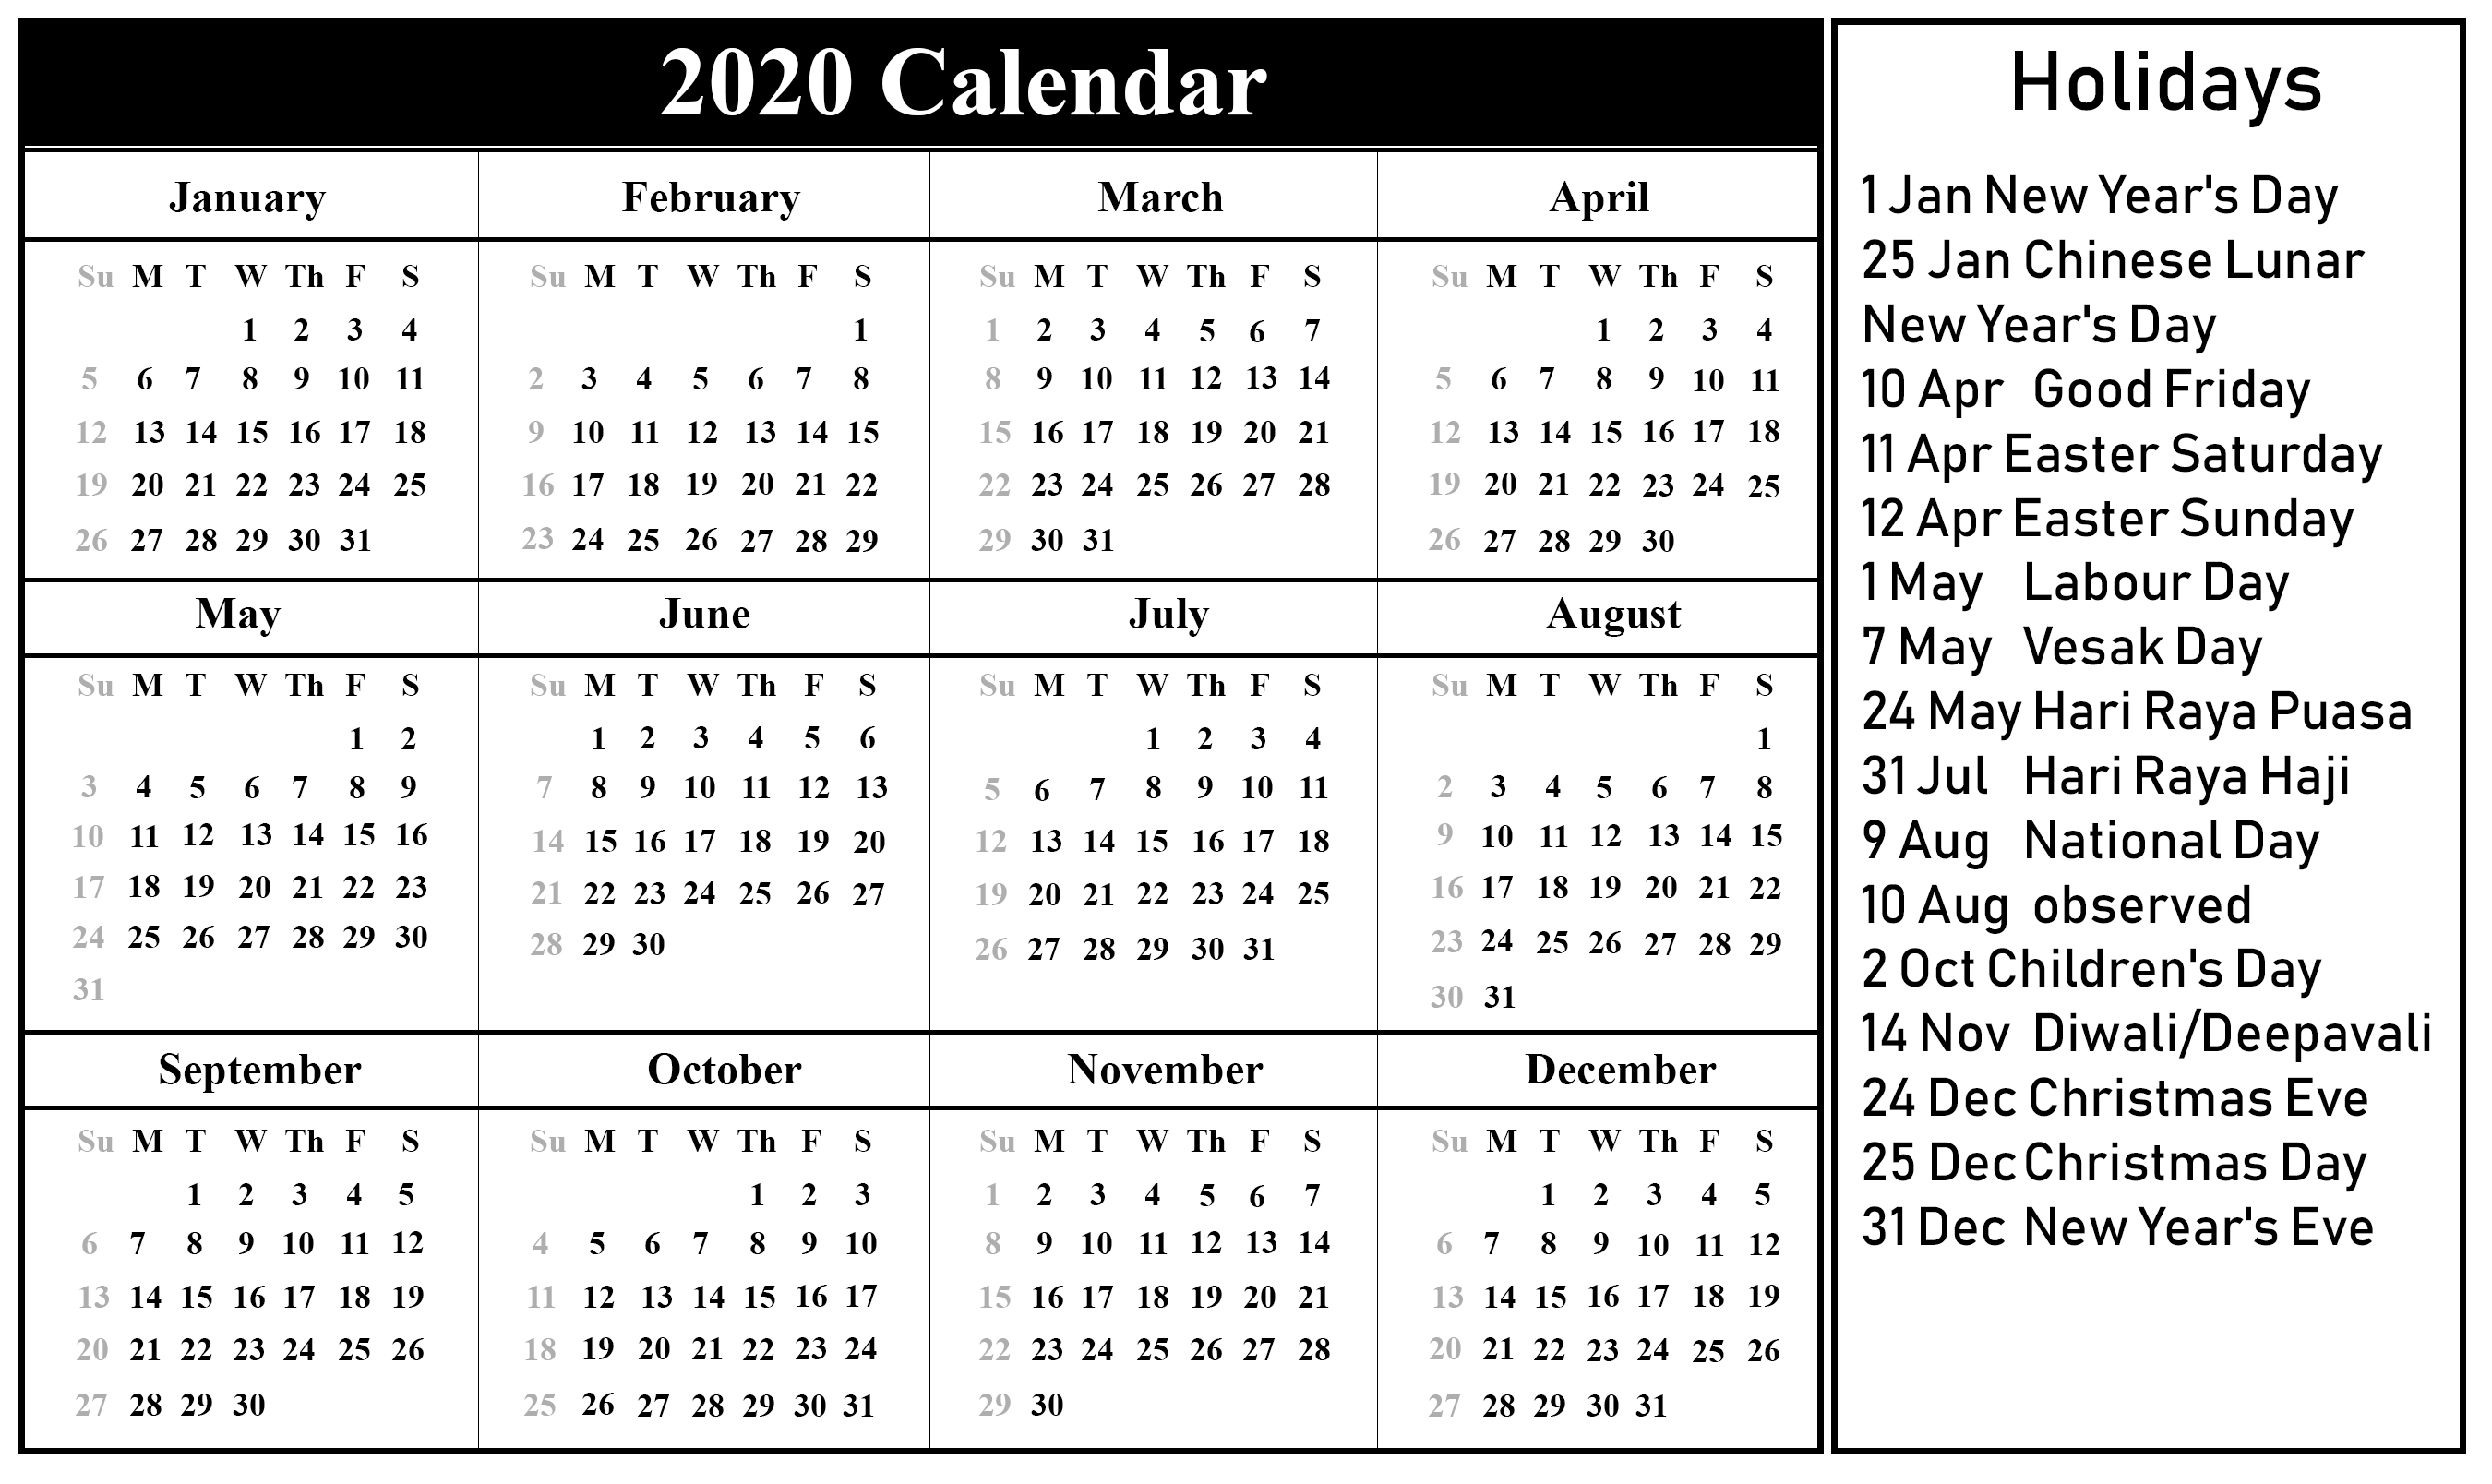 Printable 2020 Calendar With Holidays | Monthly Calendar-America School Holidays 2020 Calendar